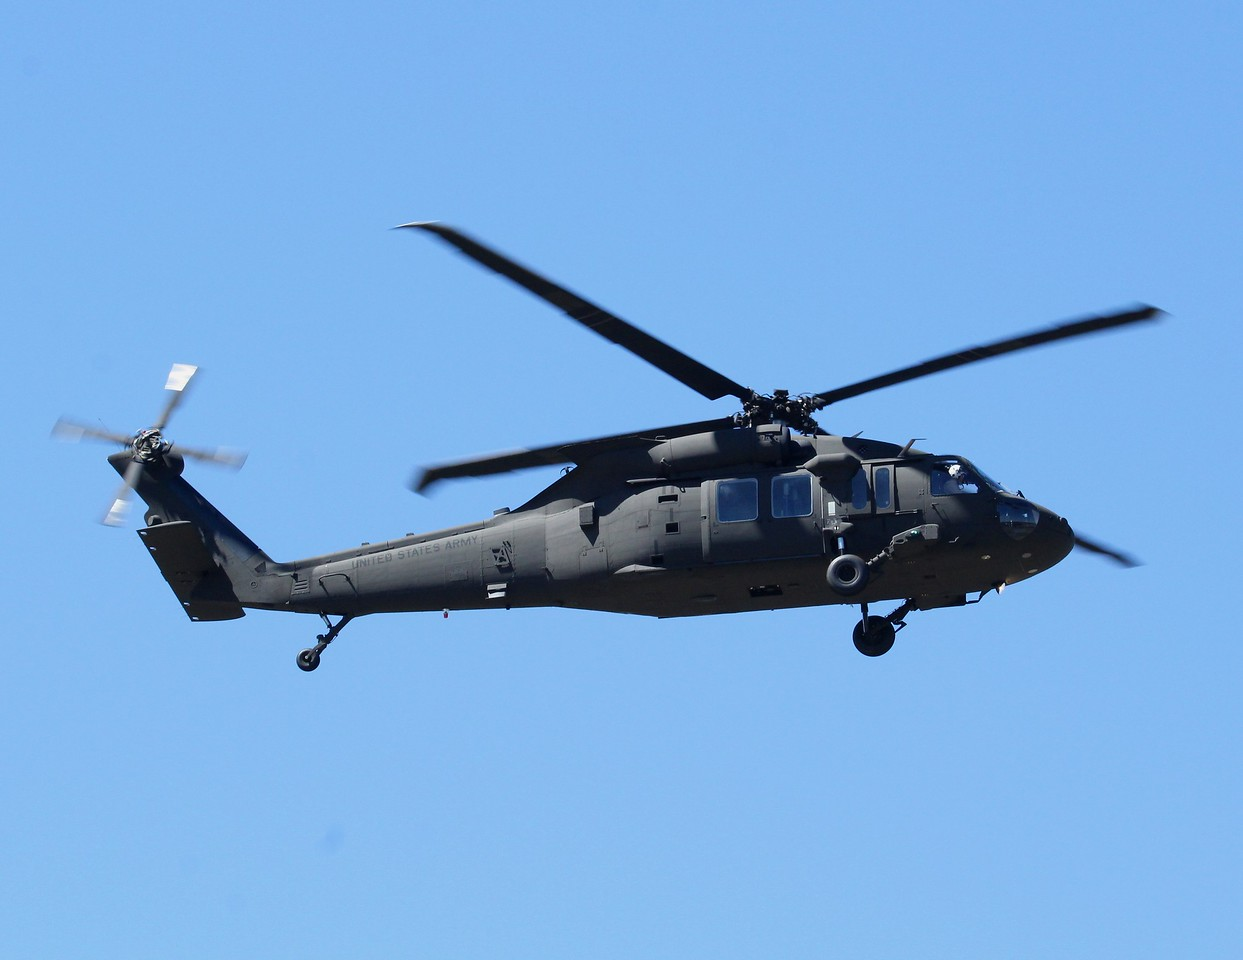 ARMY2743 on low approach at Tweed-New Haven (KHVN)